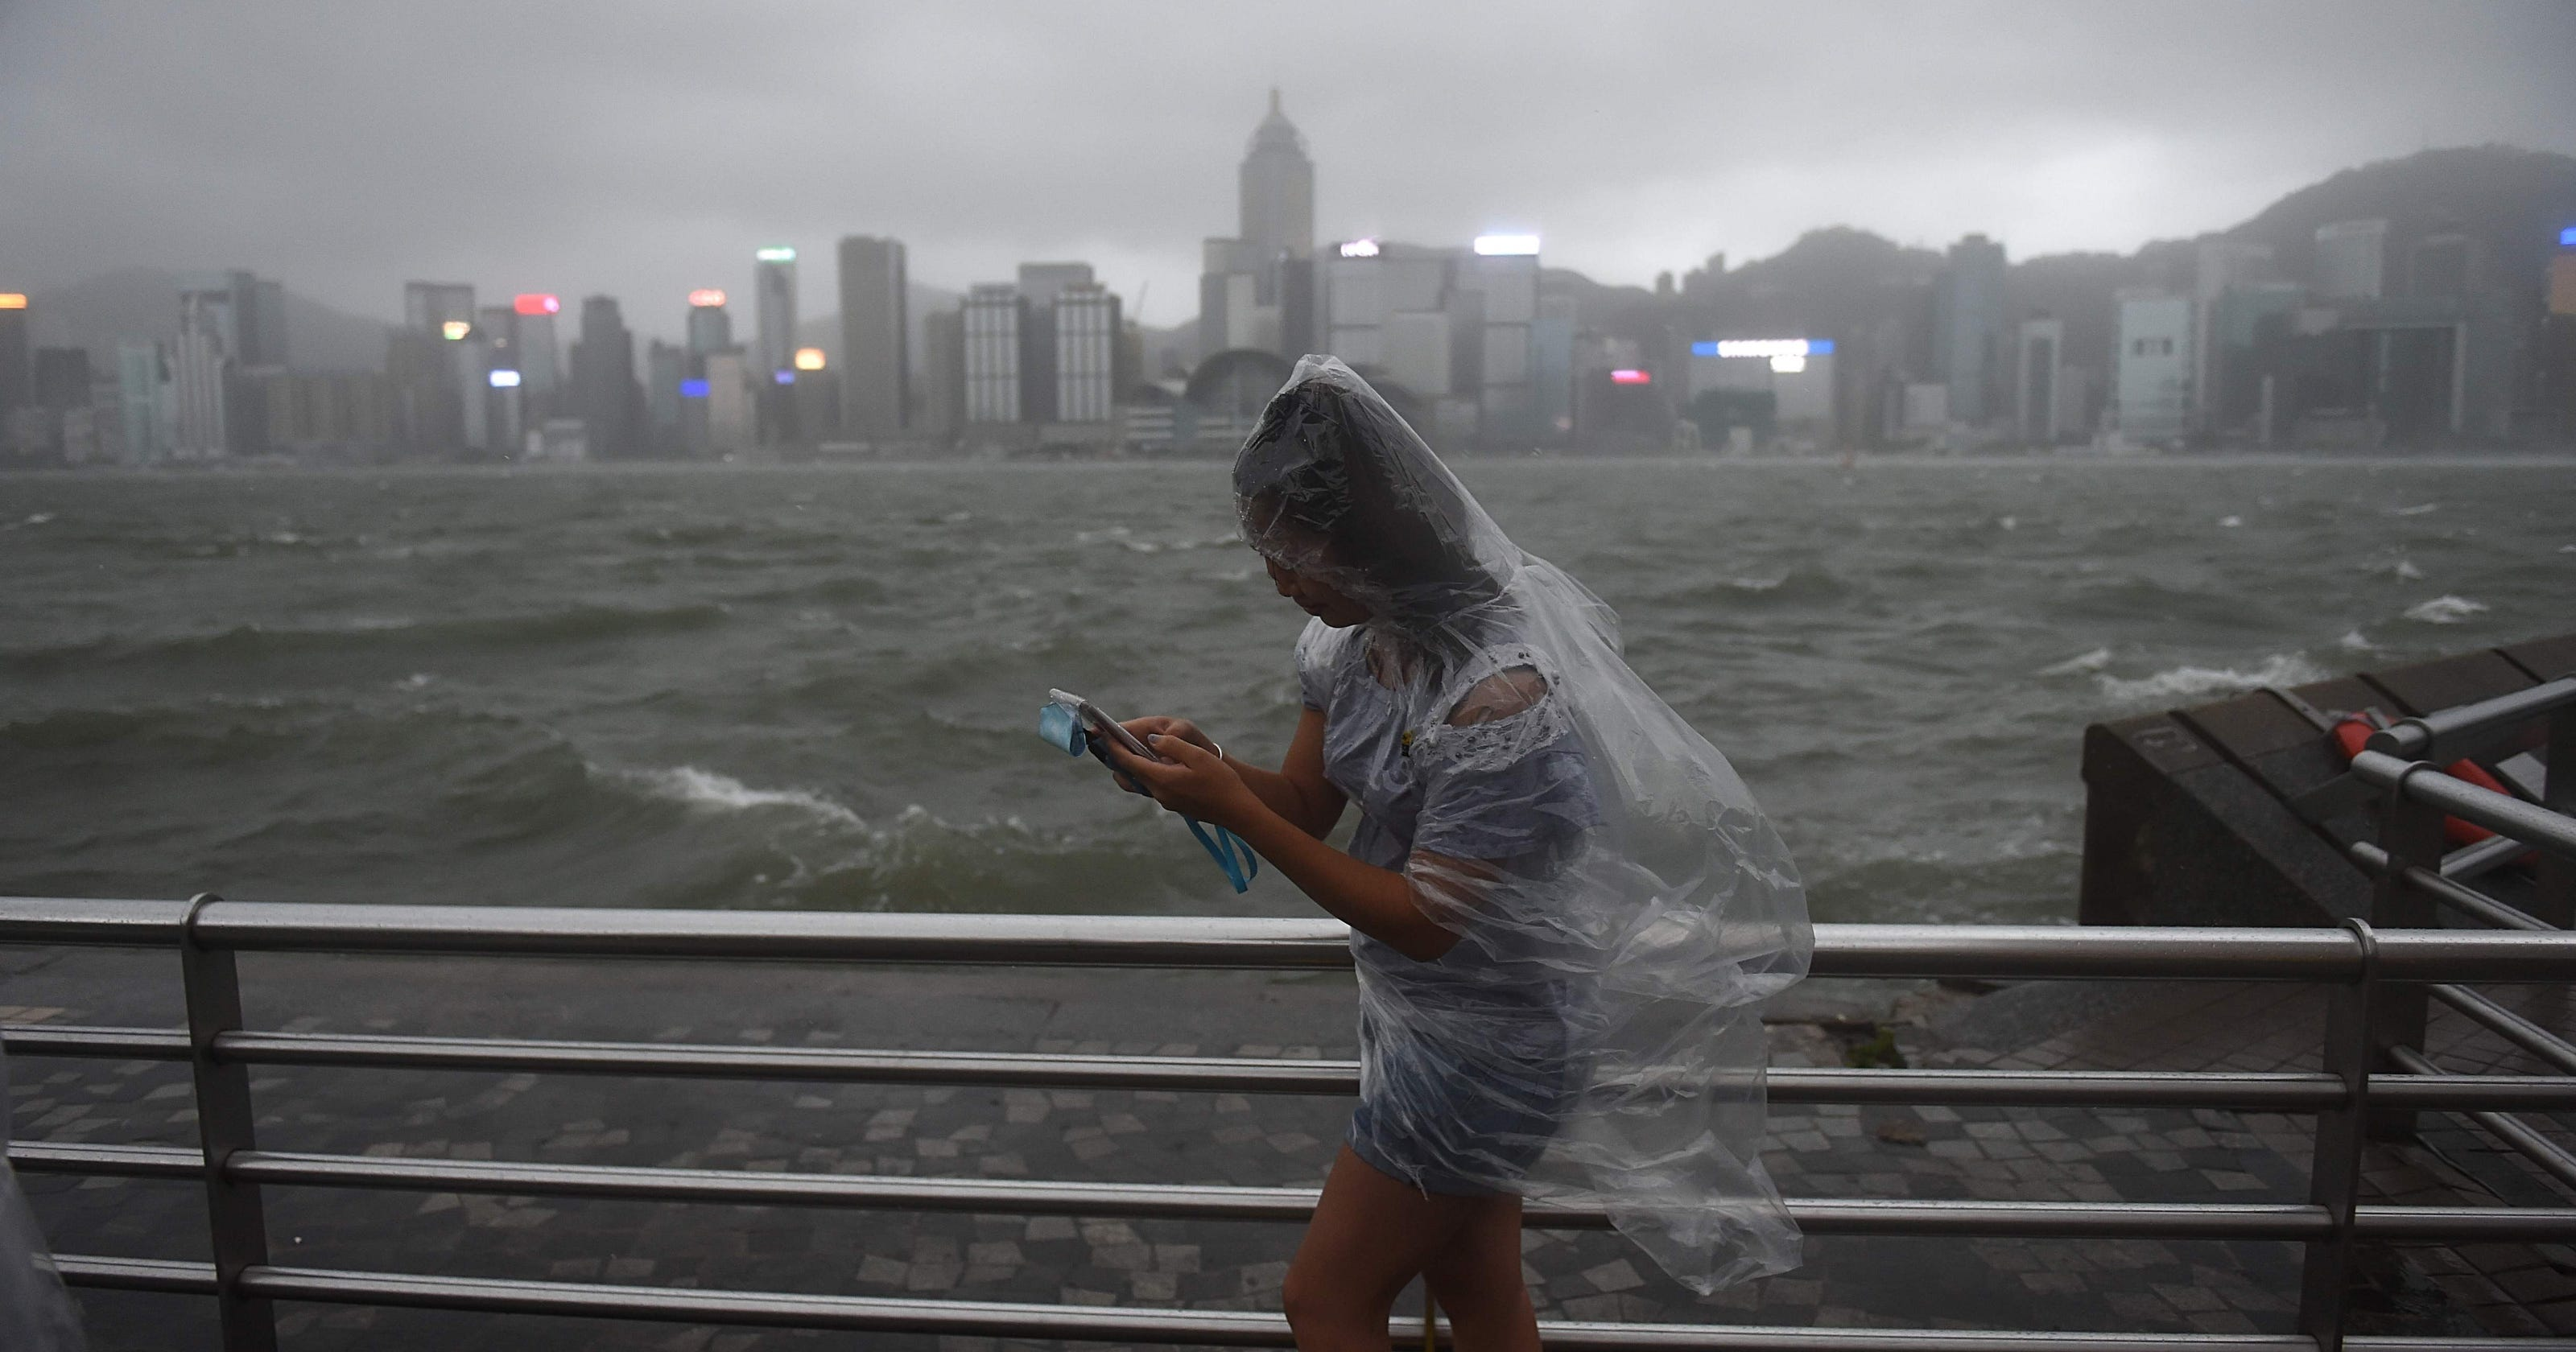 Your smartphone got wet  Here's what not to do first